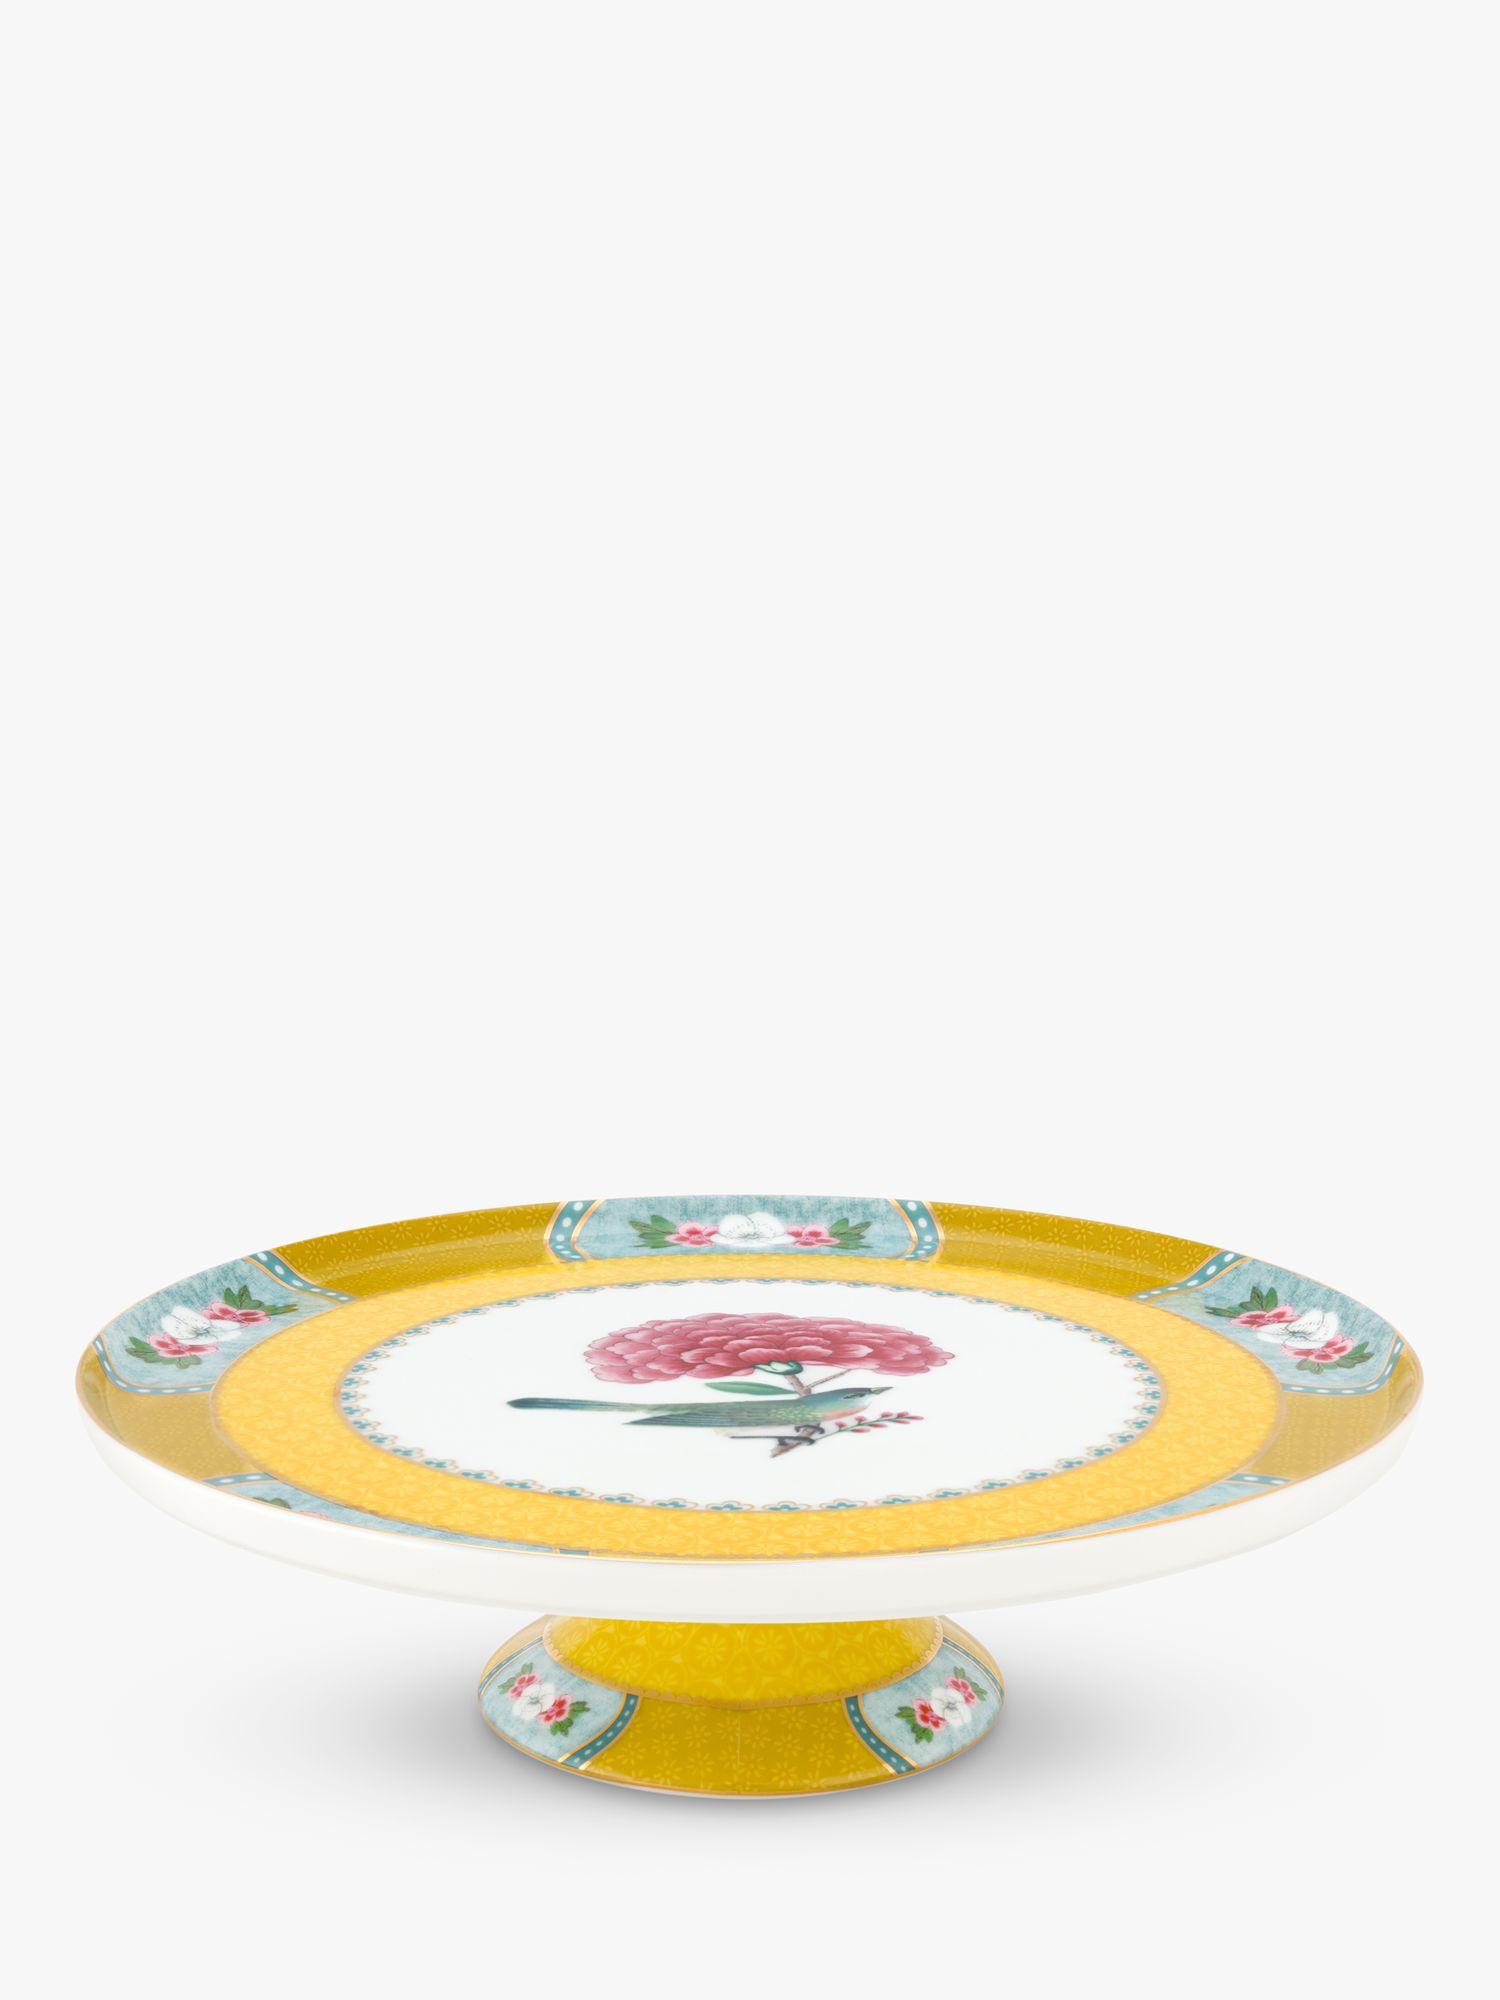 PiP Studio PiP Studio Blushing Birds Mini Cake Stand, 21cm, Yellow/Multi